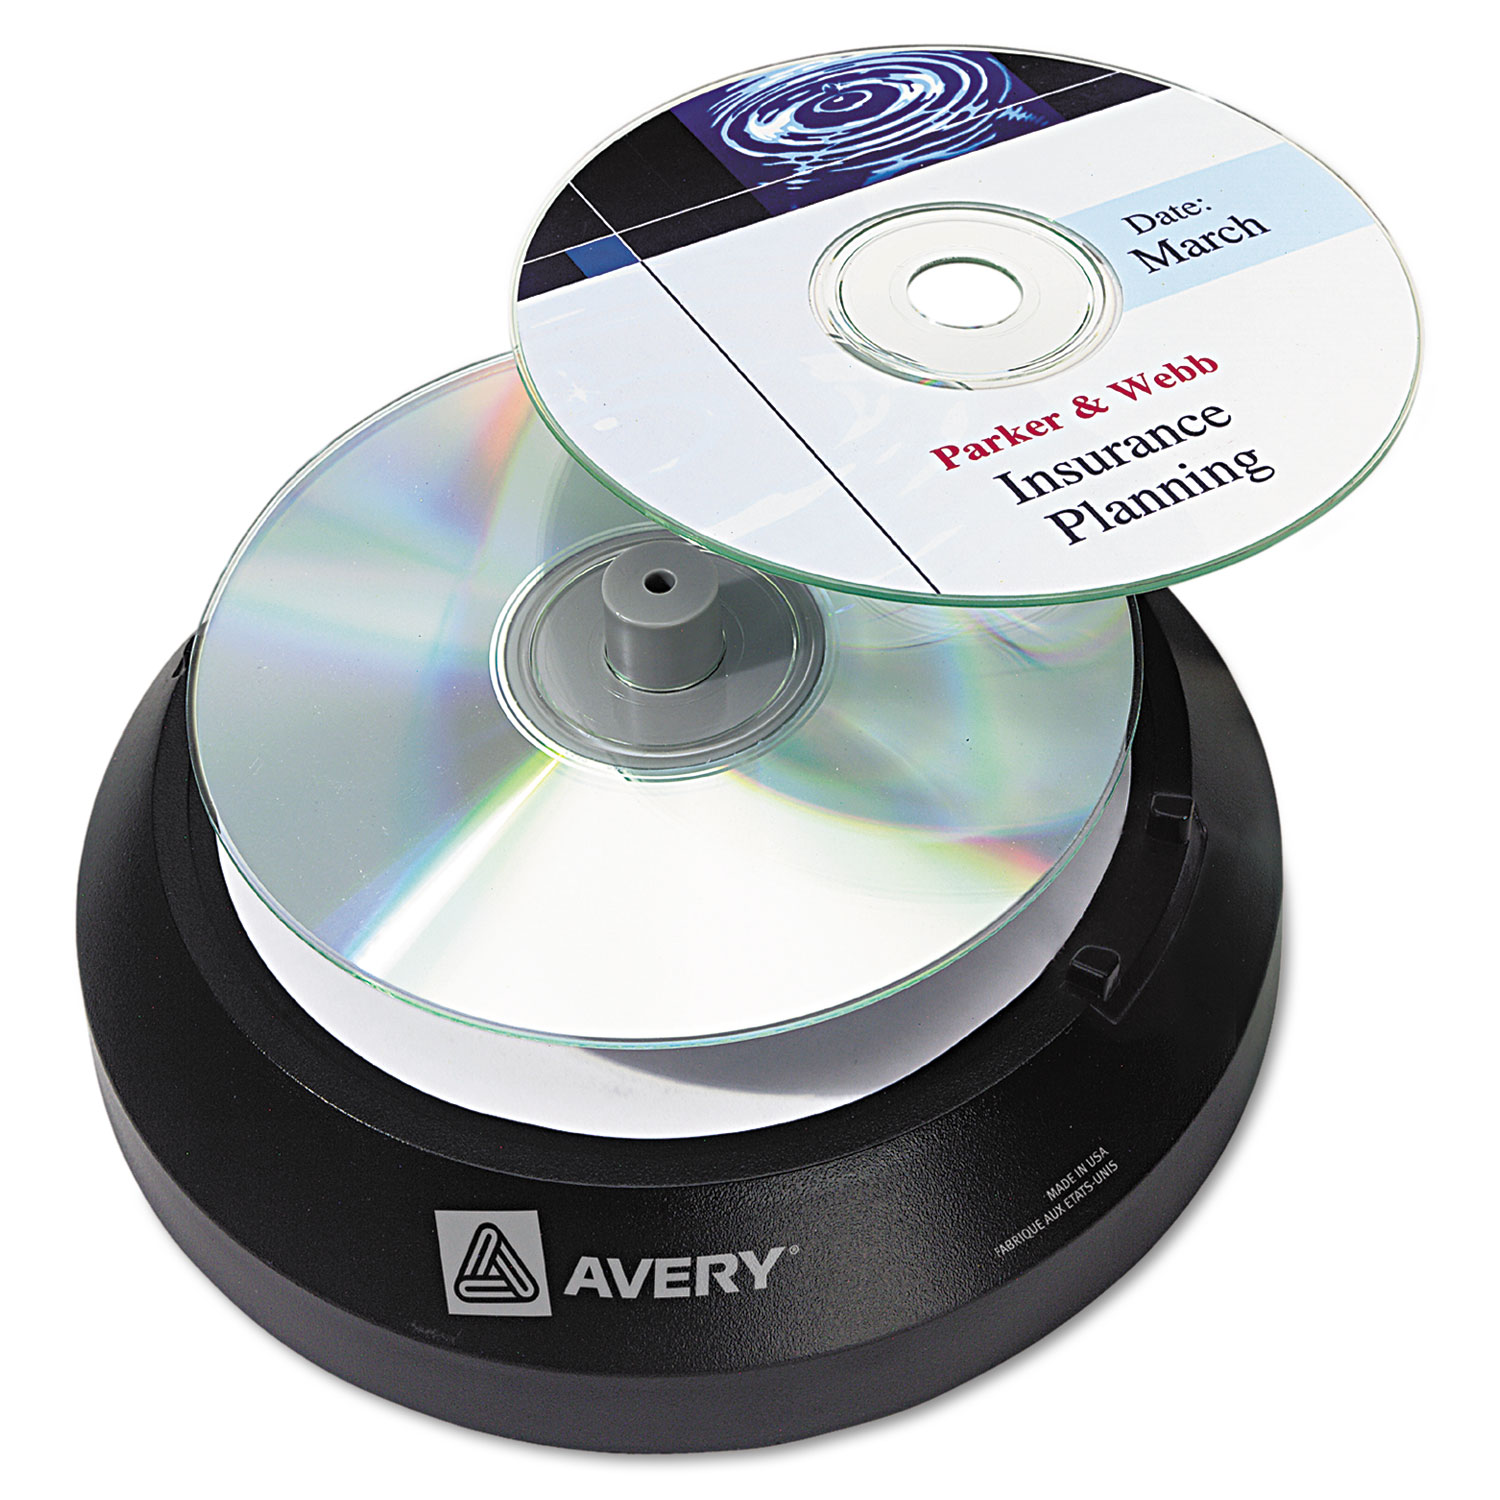 cd dvd label applicator by avery ave05699 ontimesupplies com